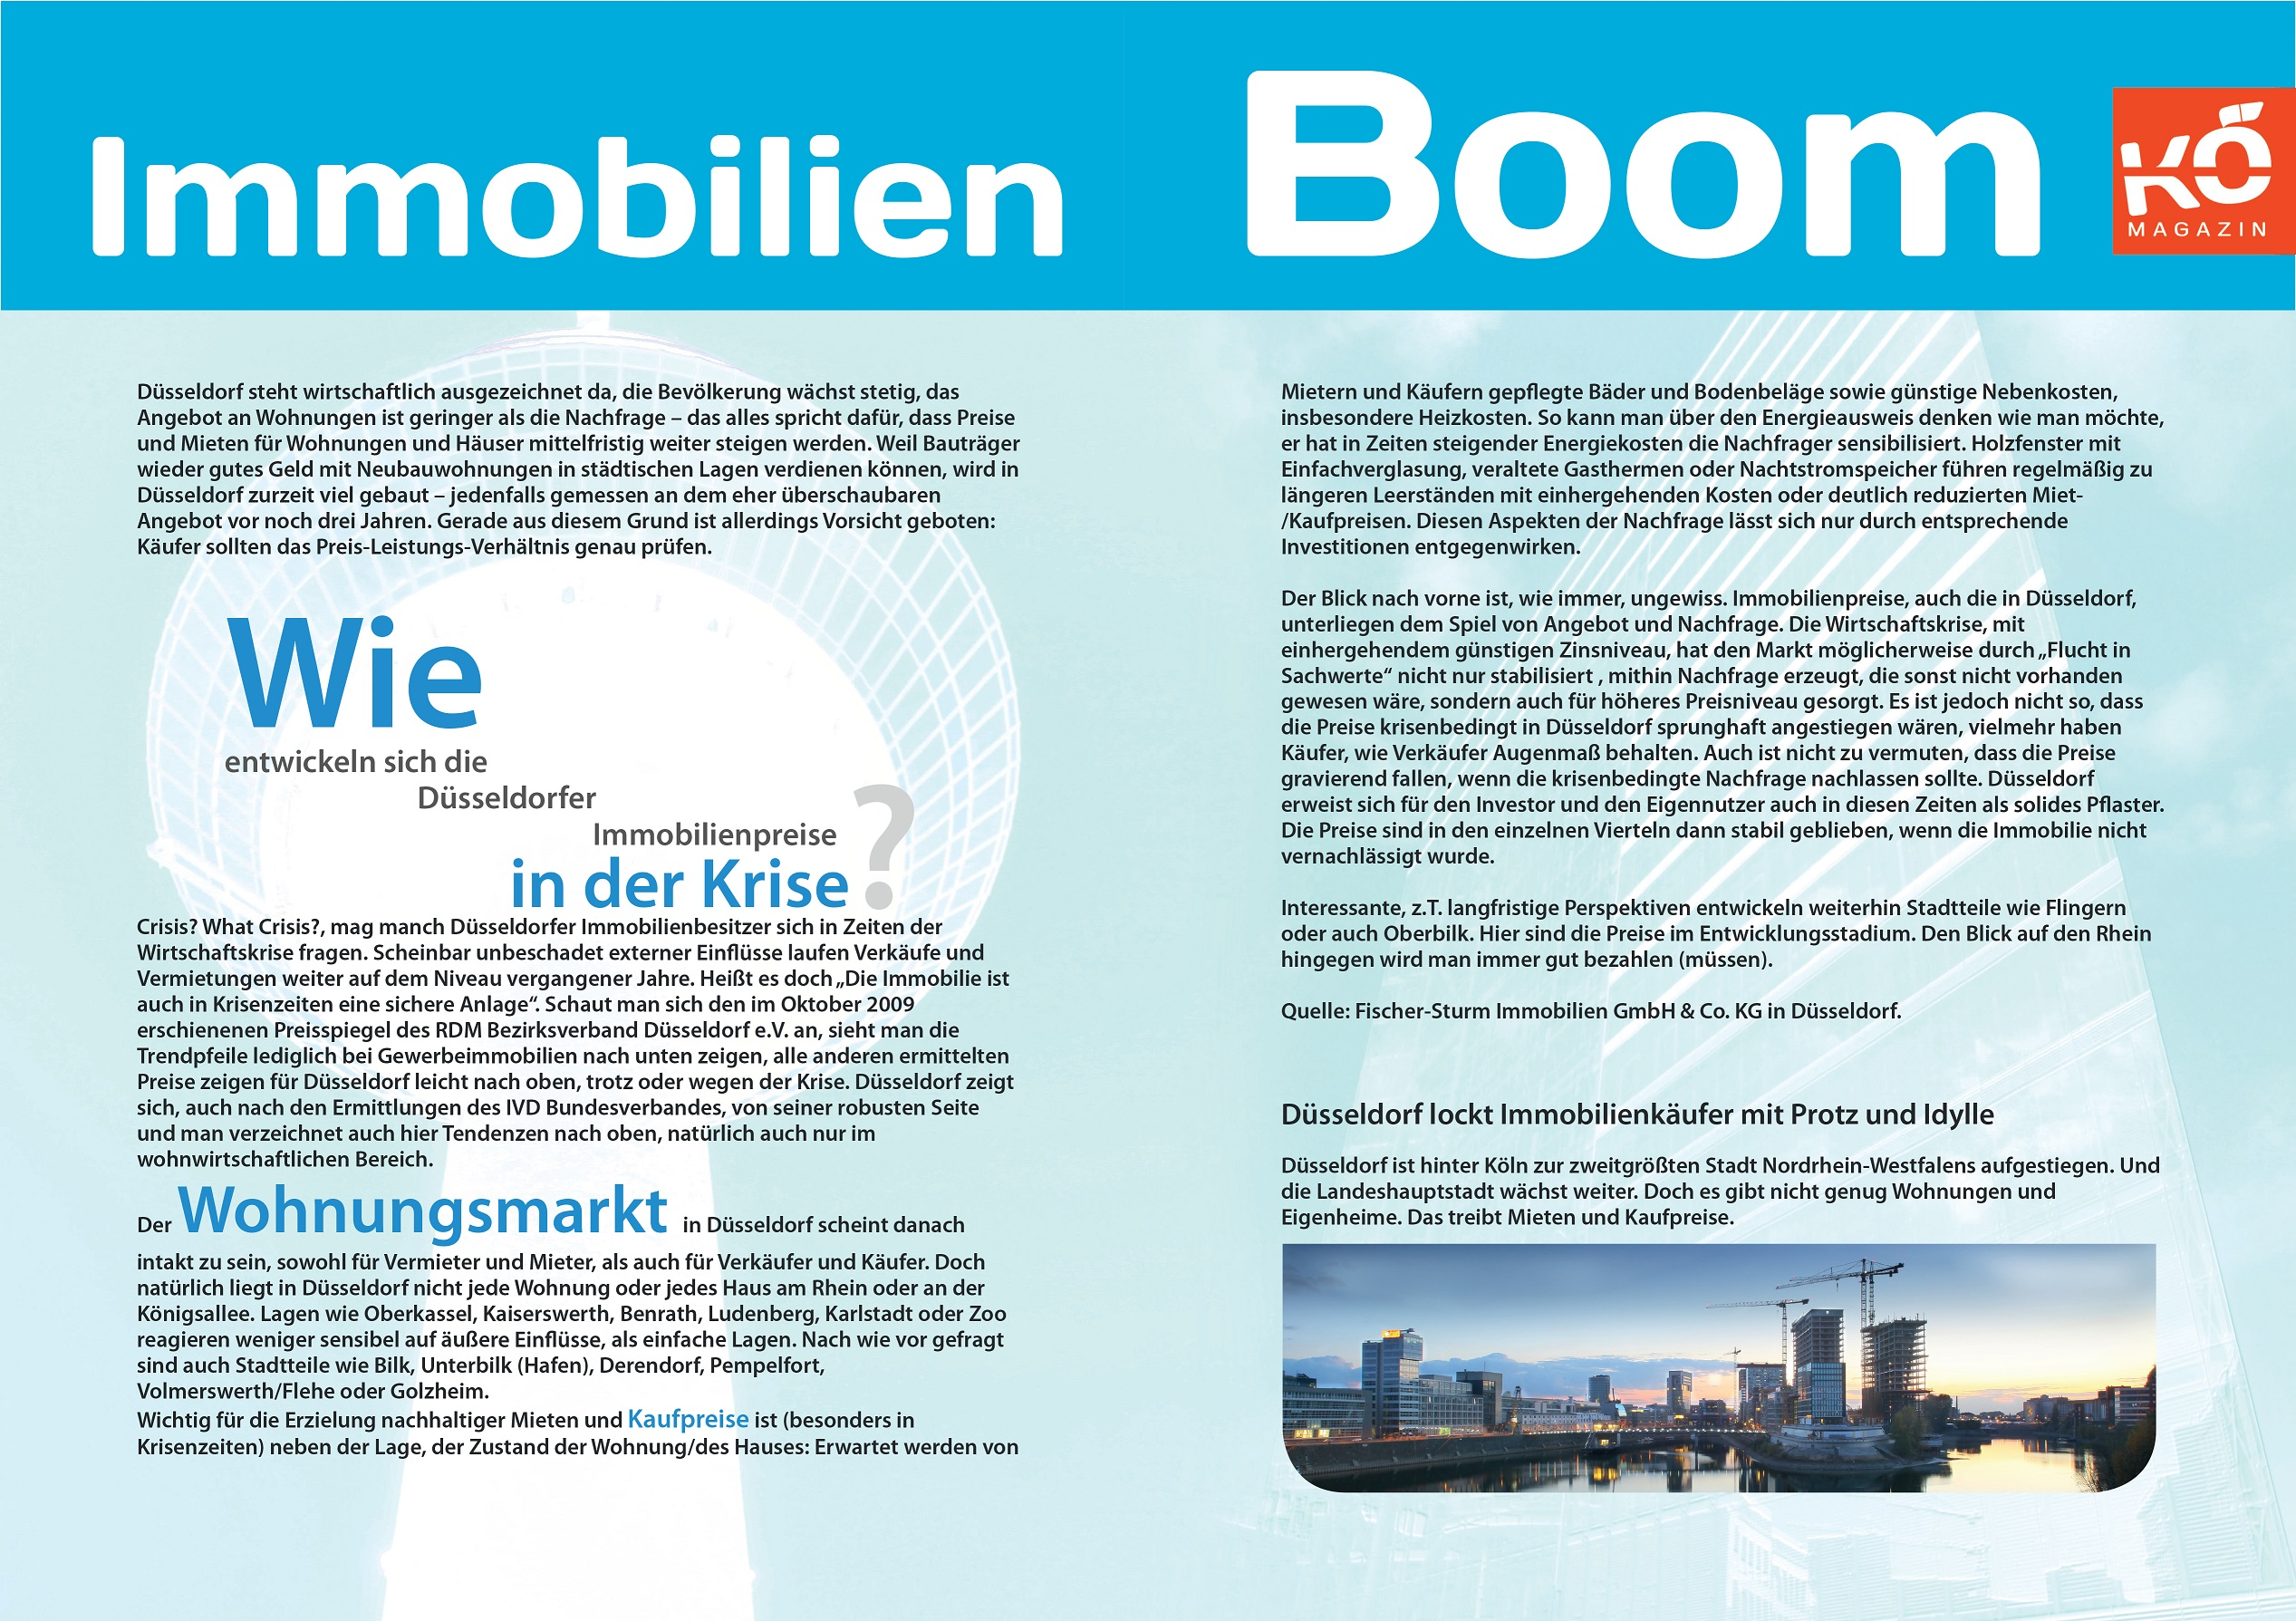 immobilien boom 1